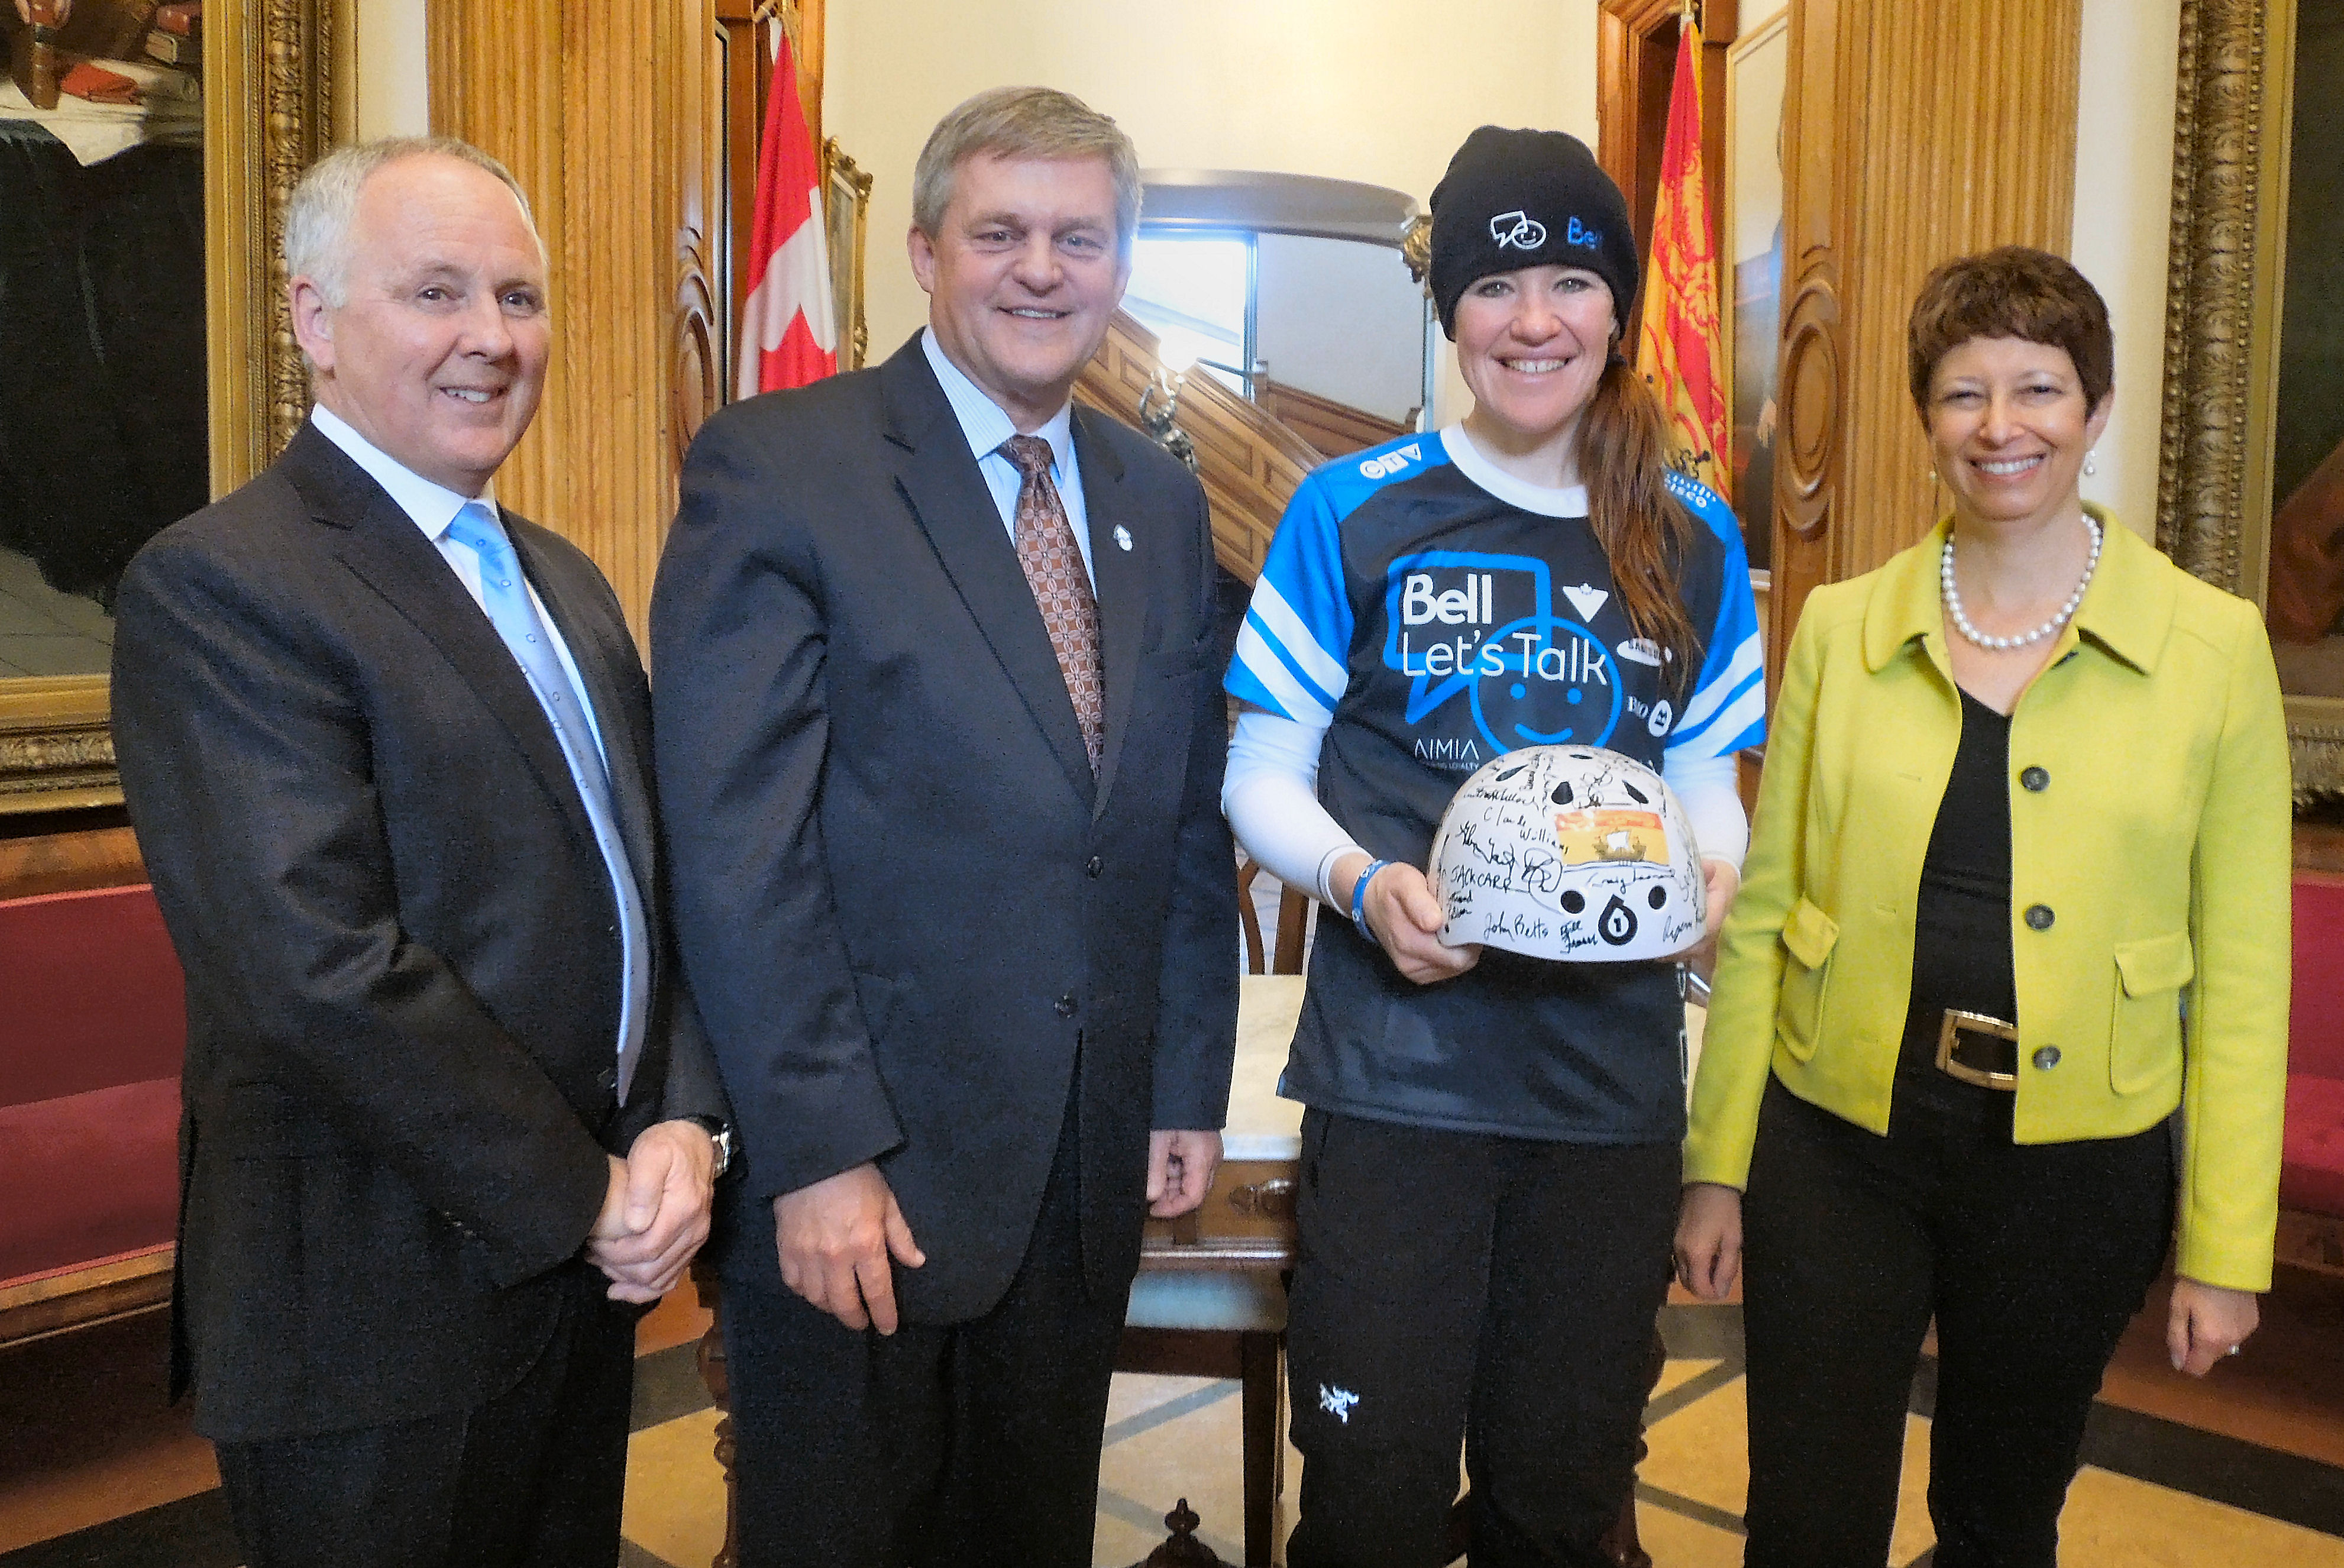 Clara Hughes visits legislative assembly